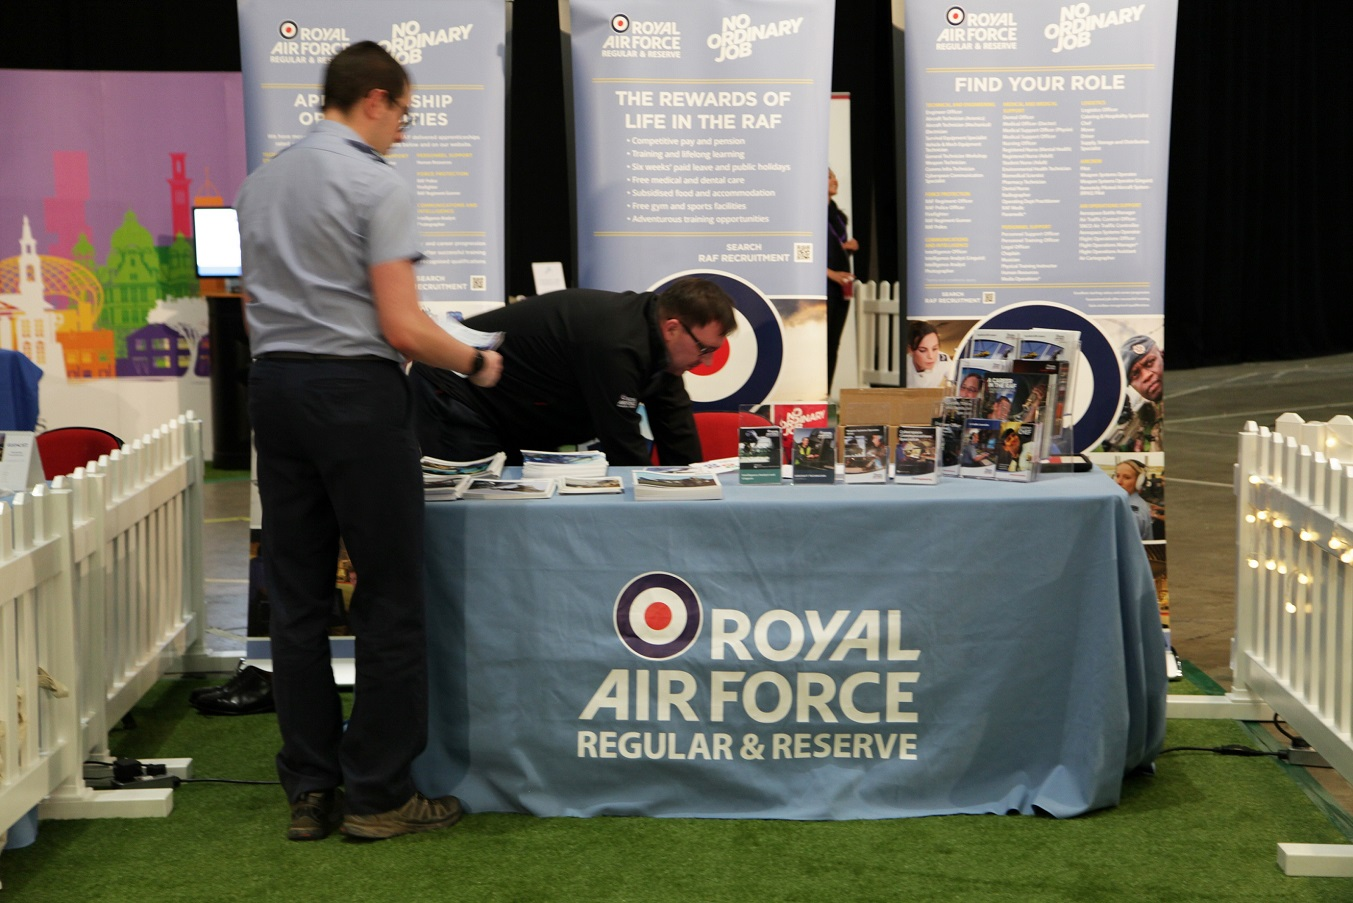 The RAF on display at Leeds Digital Job Fair 4.0